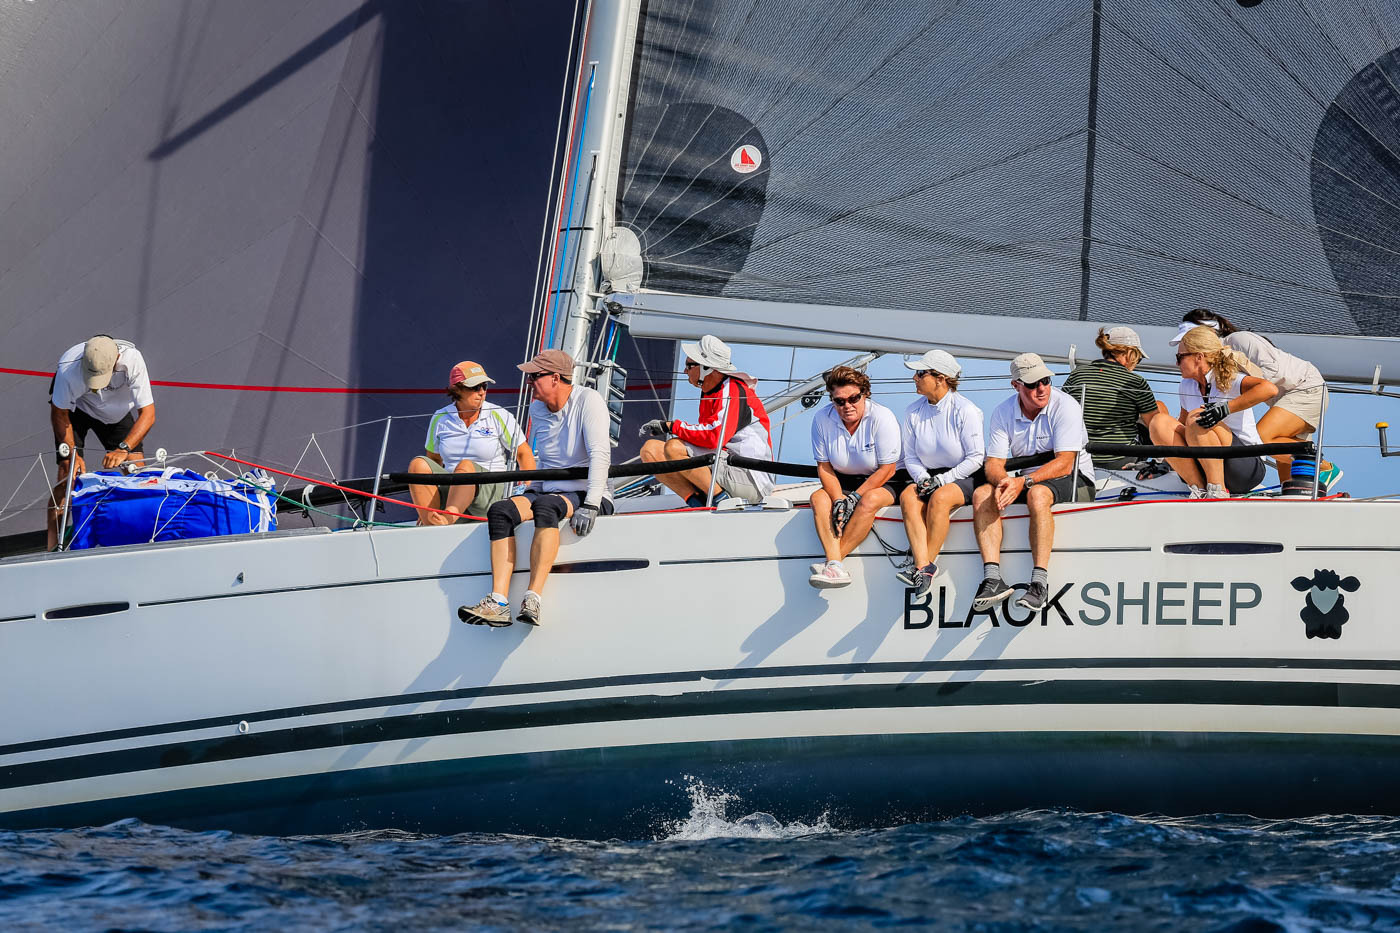 Black Sheep - Hicko Shield receipients for Sail Port Stephens 2016. Photo Saltwater Images.